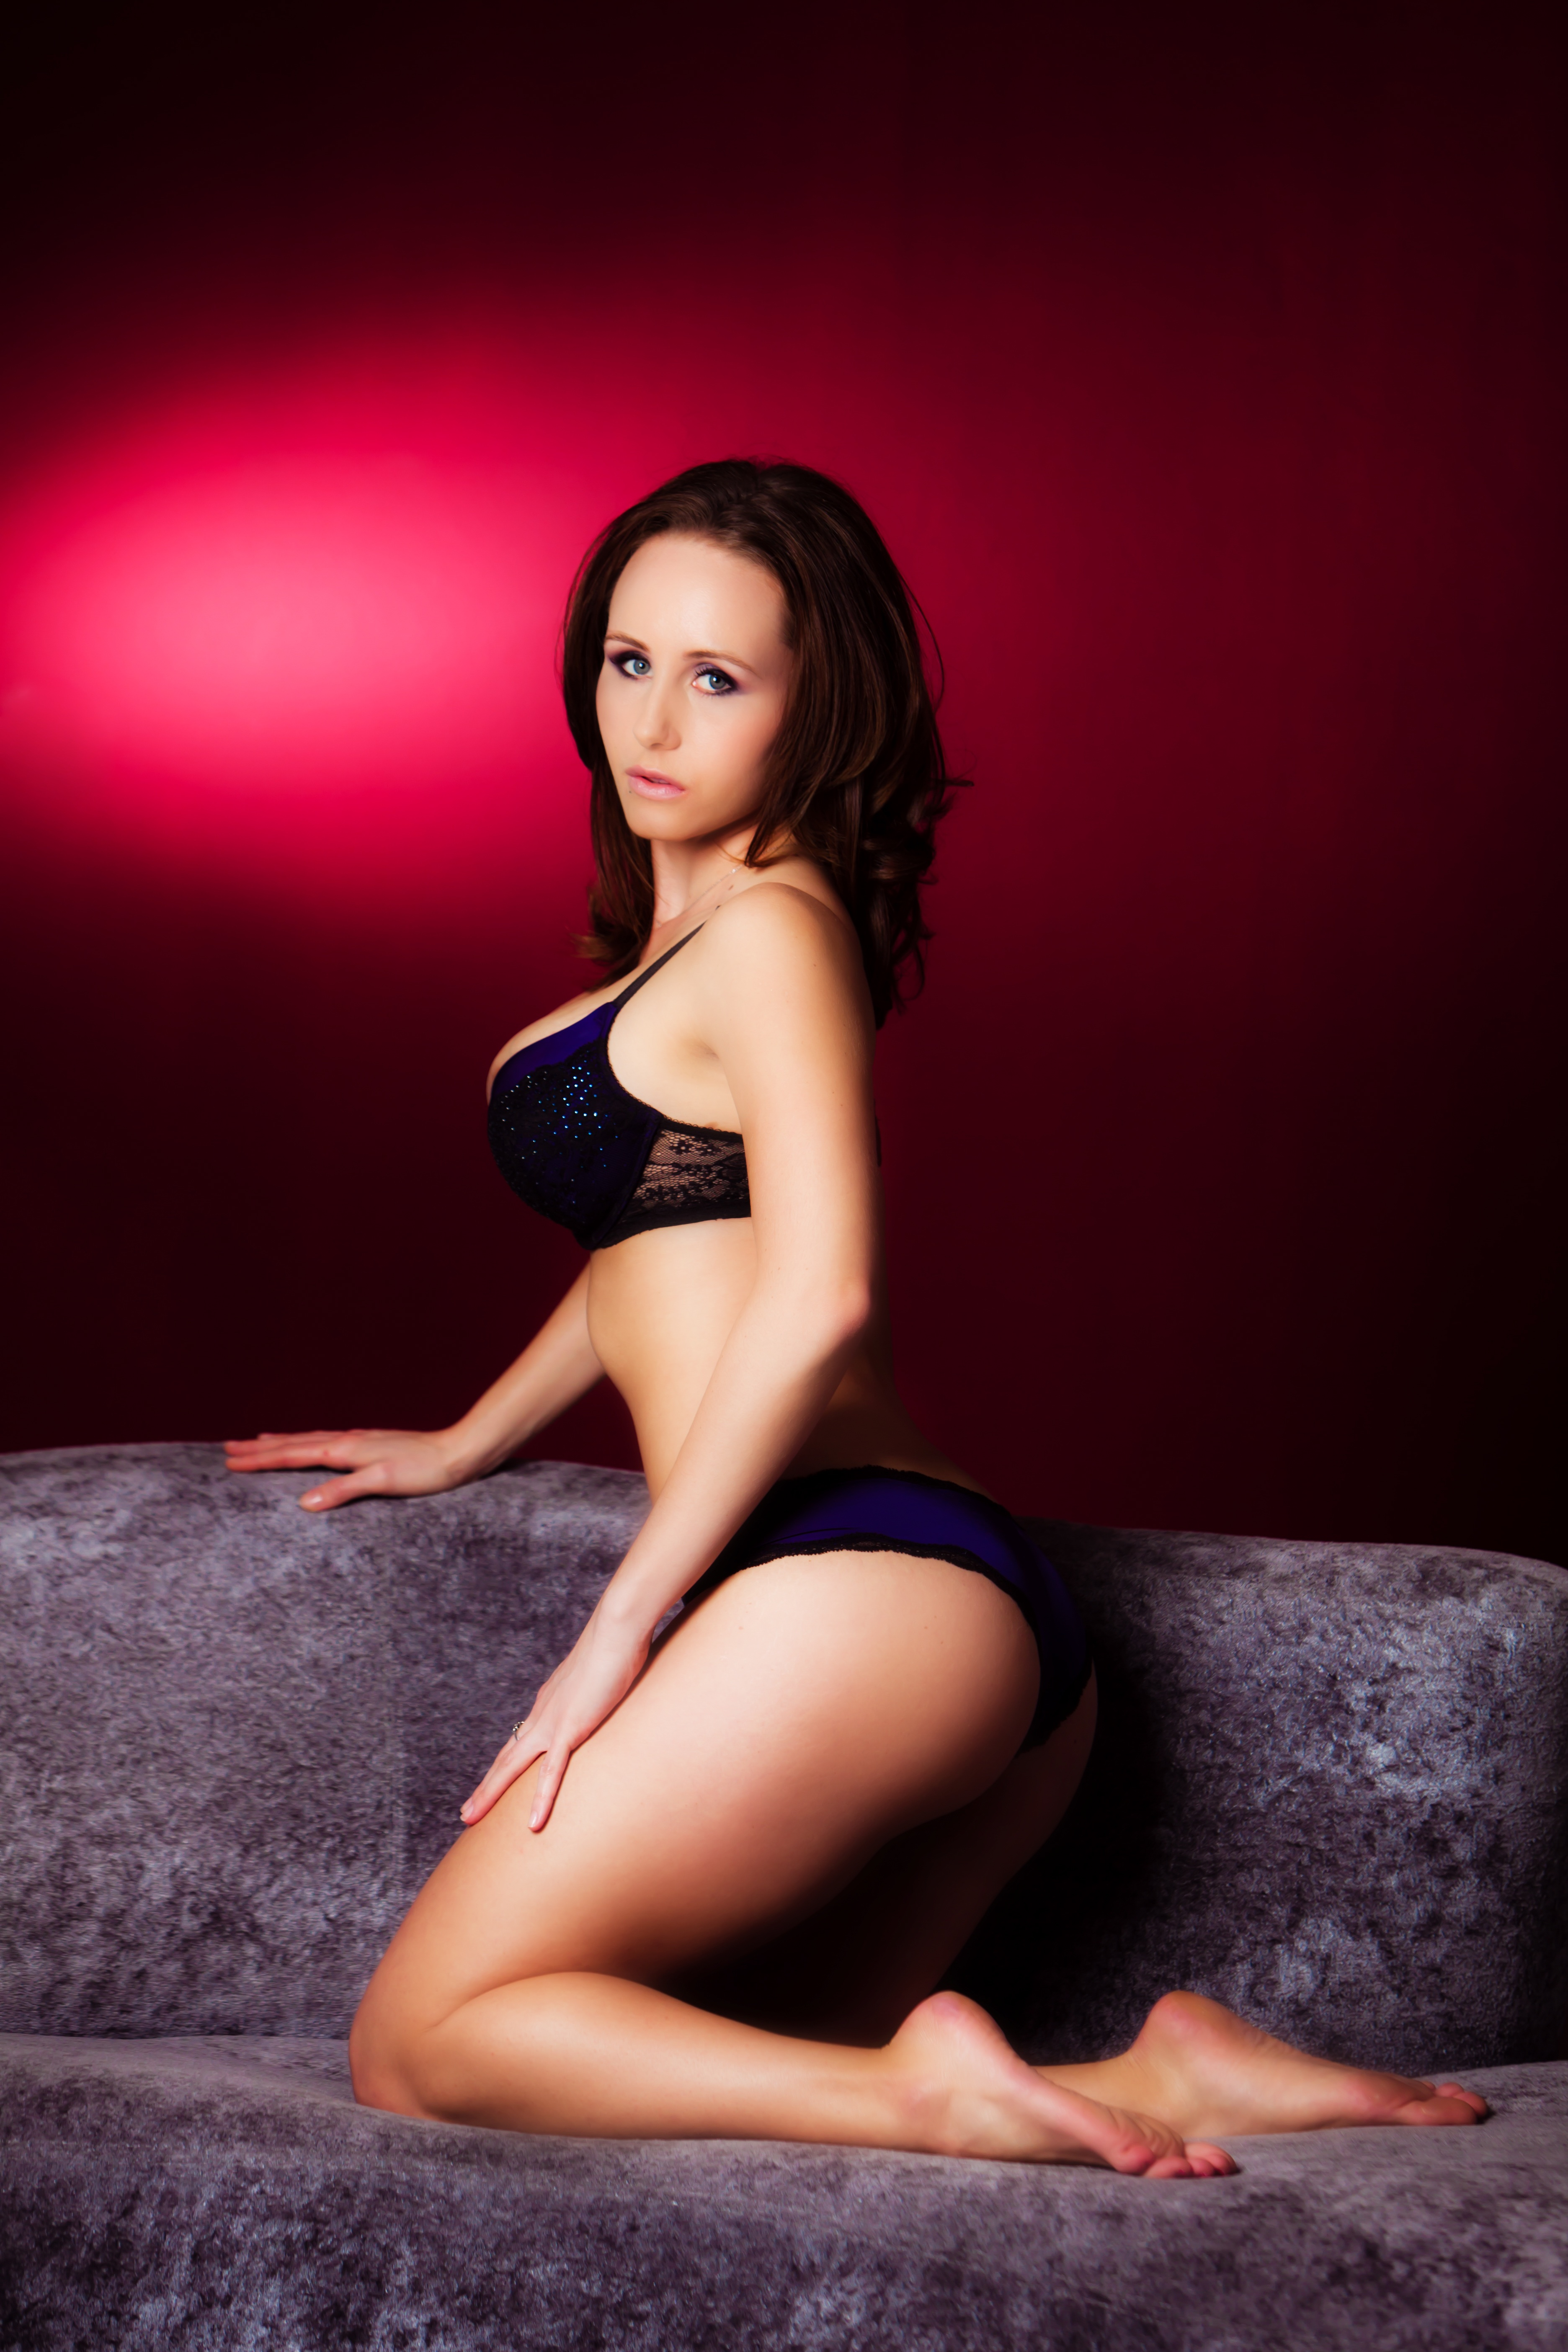 Female Strippers for Bachelor Parties in